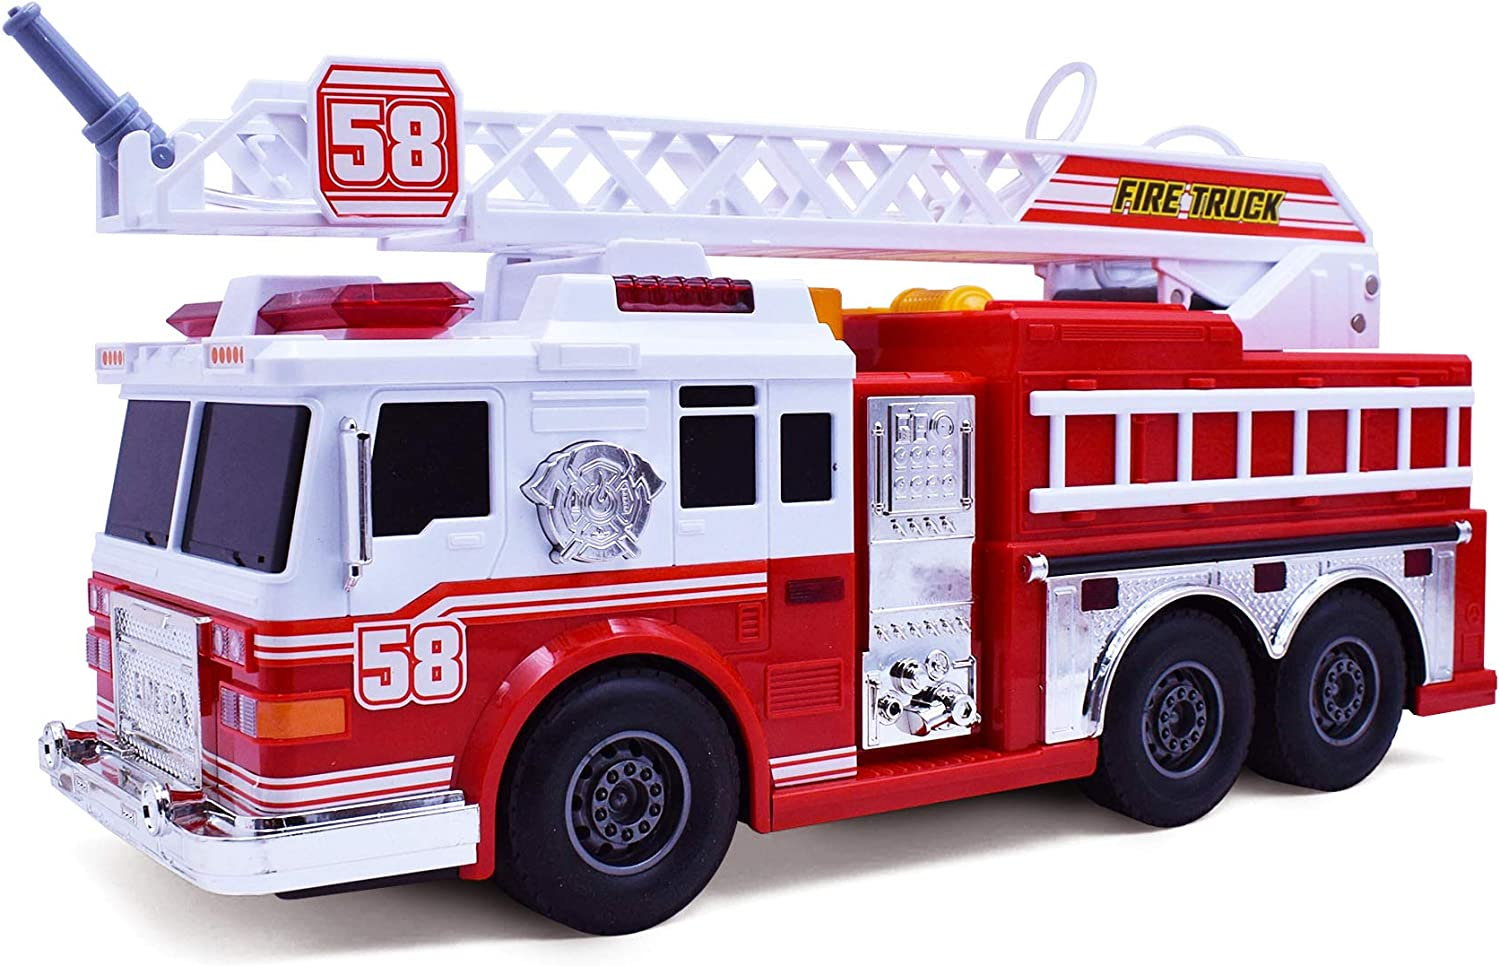 Fire Motorized Truck with Lights, Siren Sound, Working Water Pump and Rotating Rescue Ladder- Electric, Motorized, Big Fun Size, Realistic Design- for Toddlers, Kids Aged 3+ Years Old